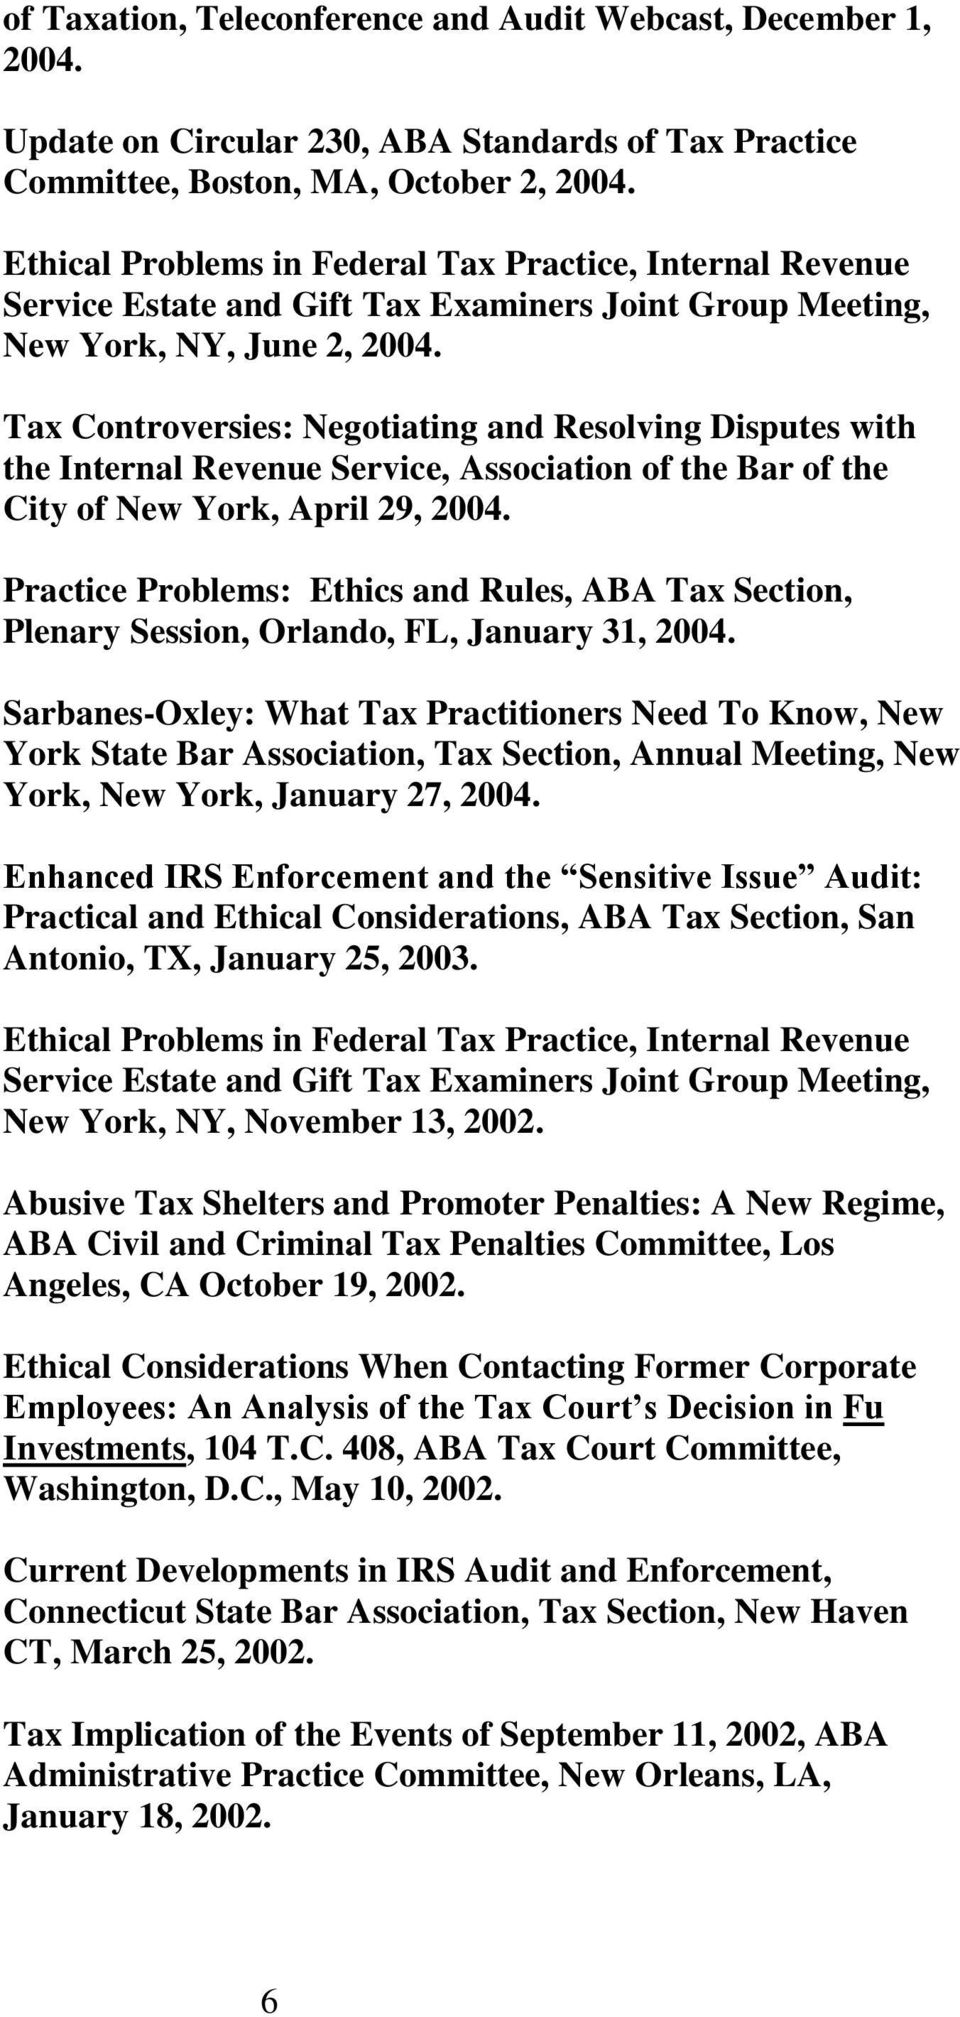 Tax Controversies: Negotiating and Resolving Disputes with the Internal Revenue Service, Association of the Bar of the City of New York, April 29, 2004.